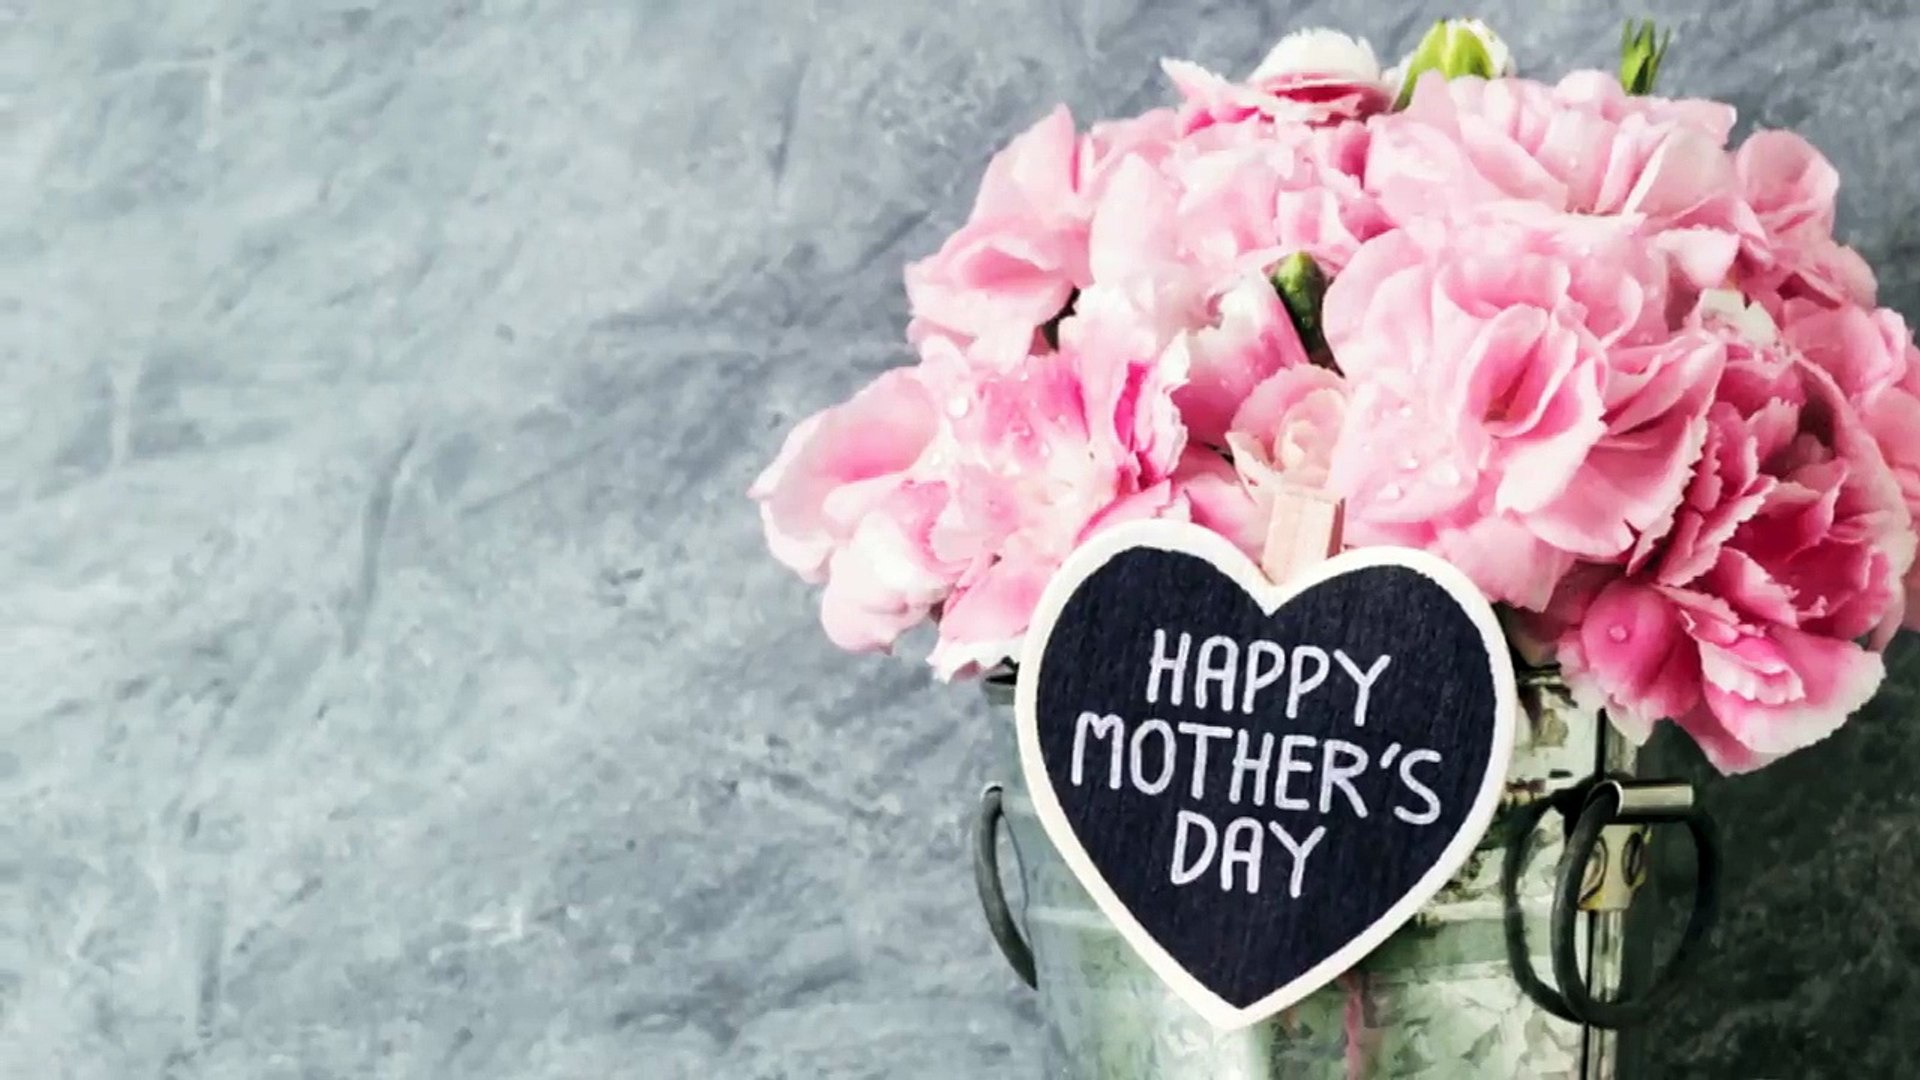 Best Mothers Day Whatsapp Status Video in tamil || Happy Mothers Day